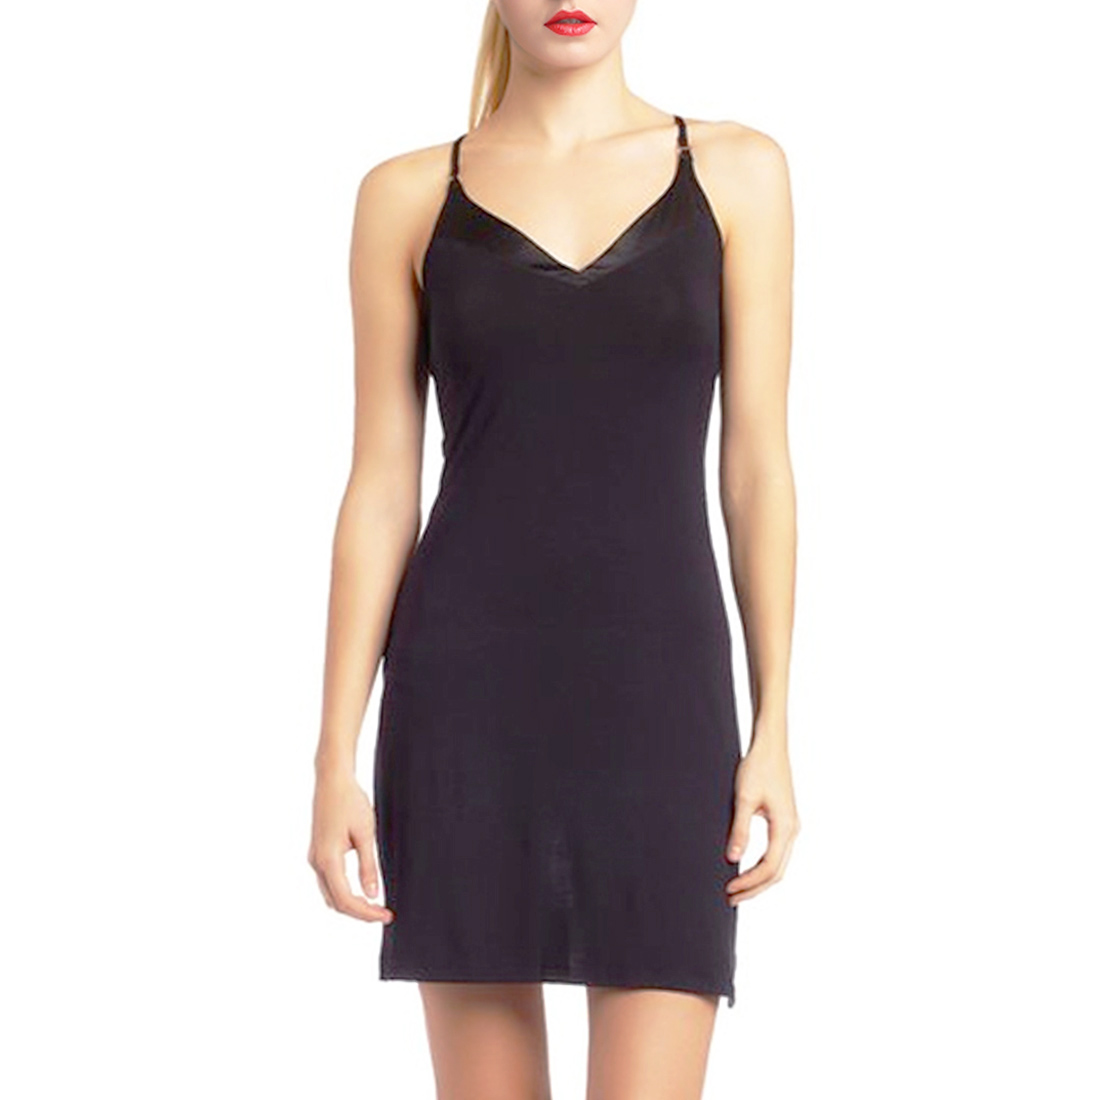 Womens sleepwear from classic brands like Lanz of Salzburg, Eileen West, and more. Our comfortable sleepwear for women provides comfort through every season.